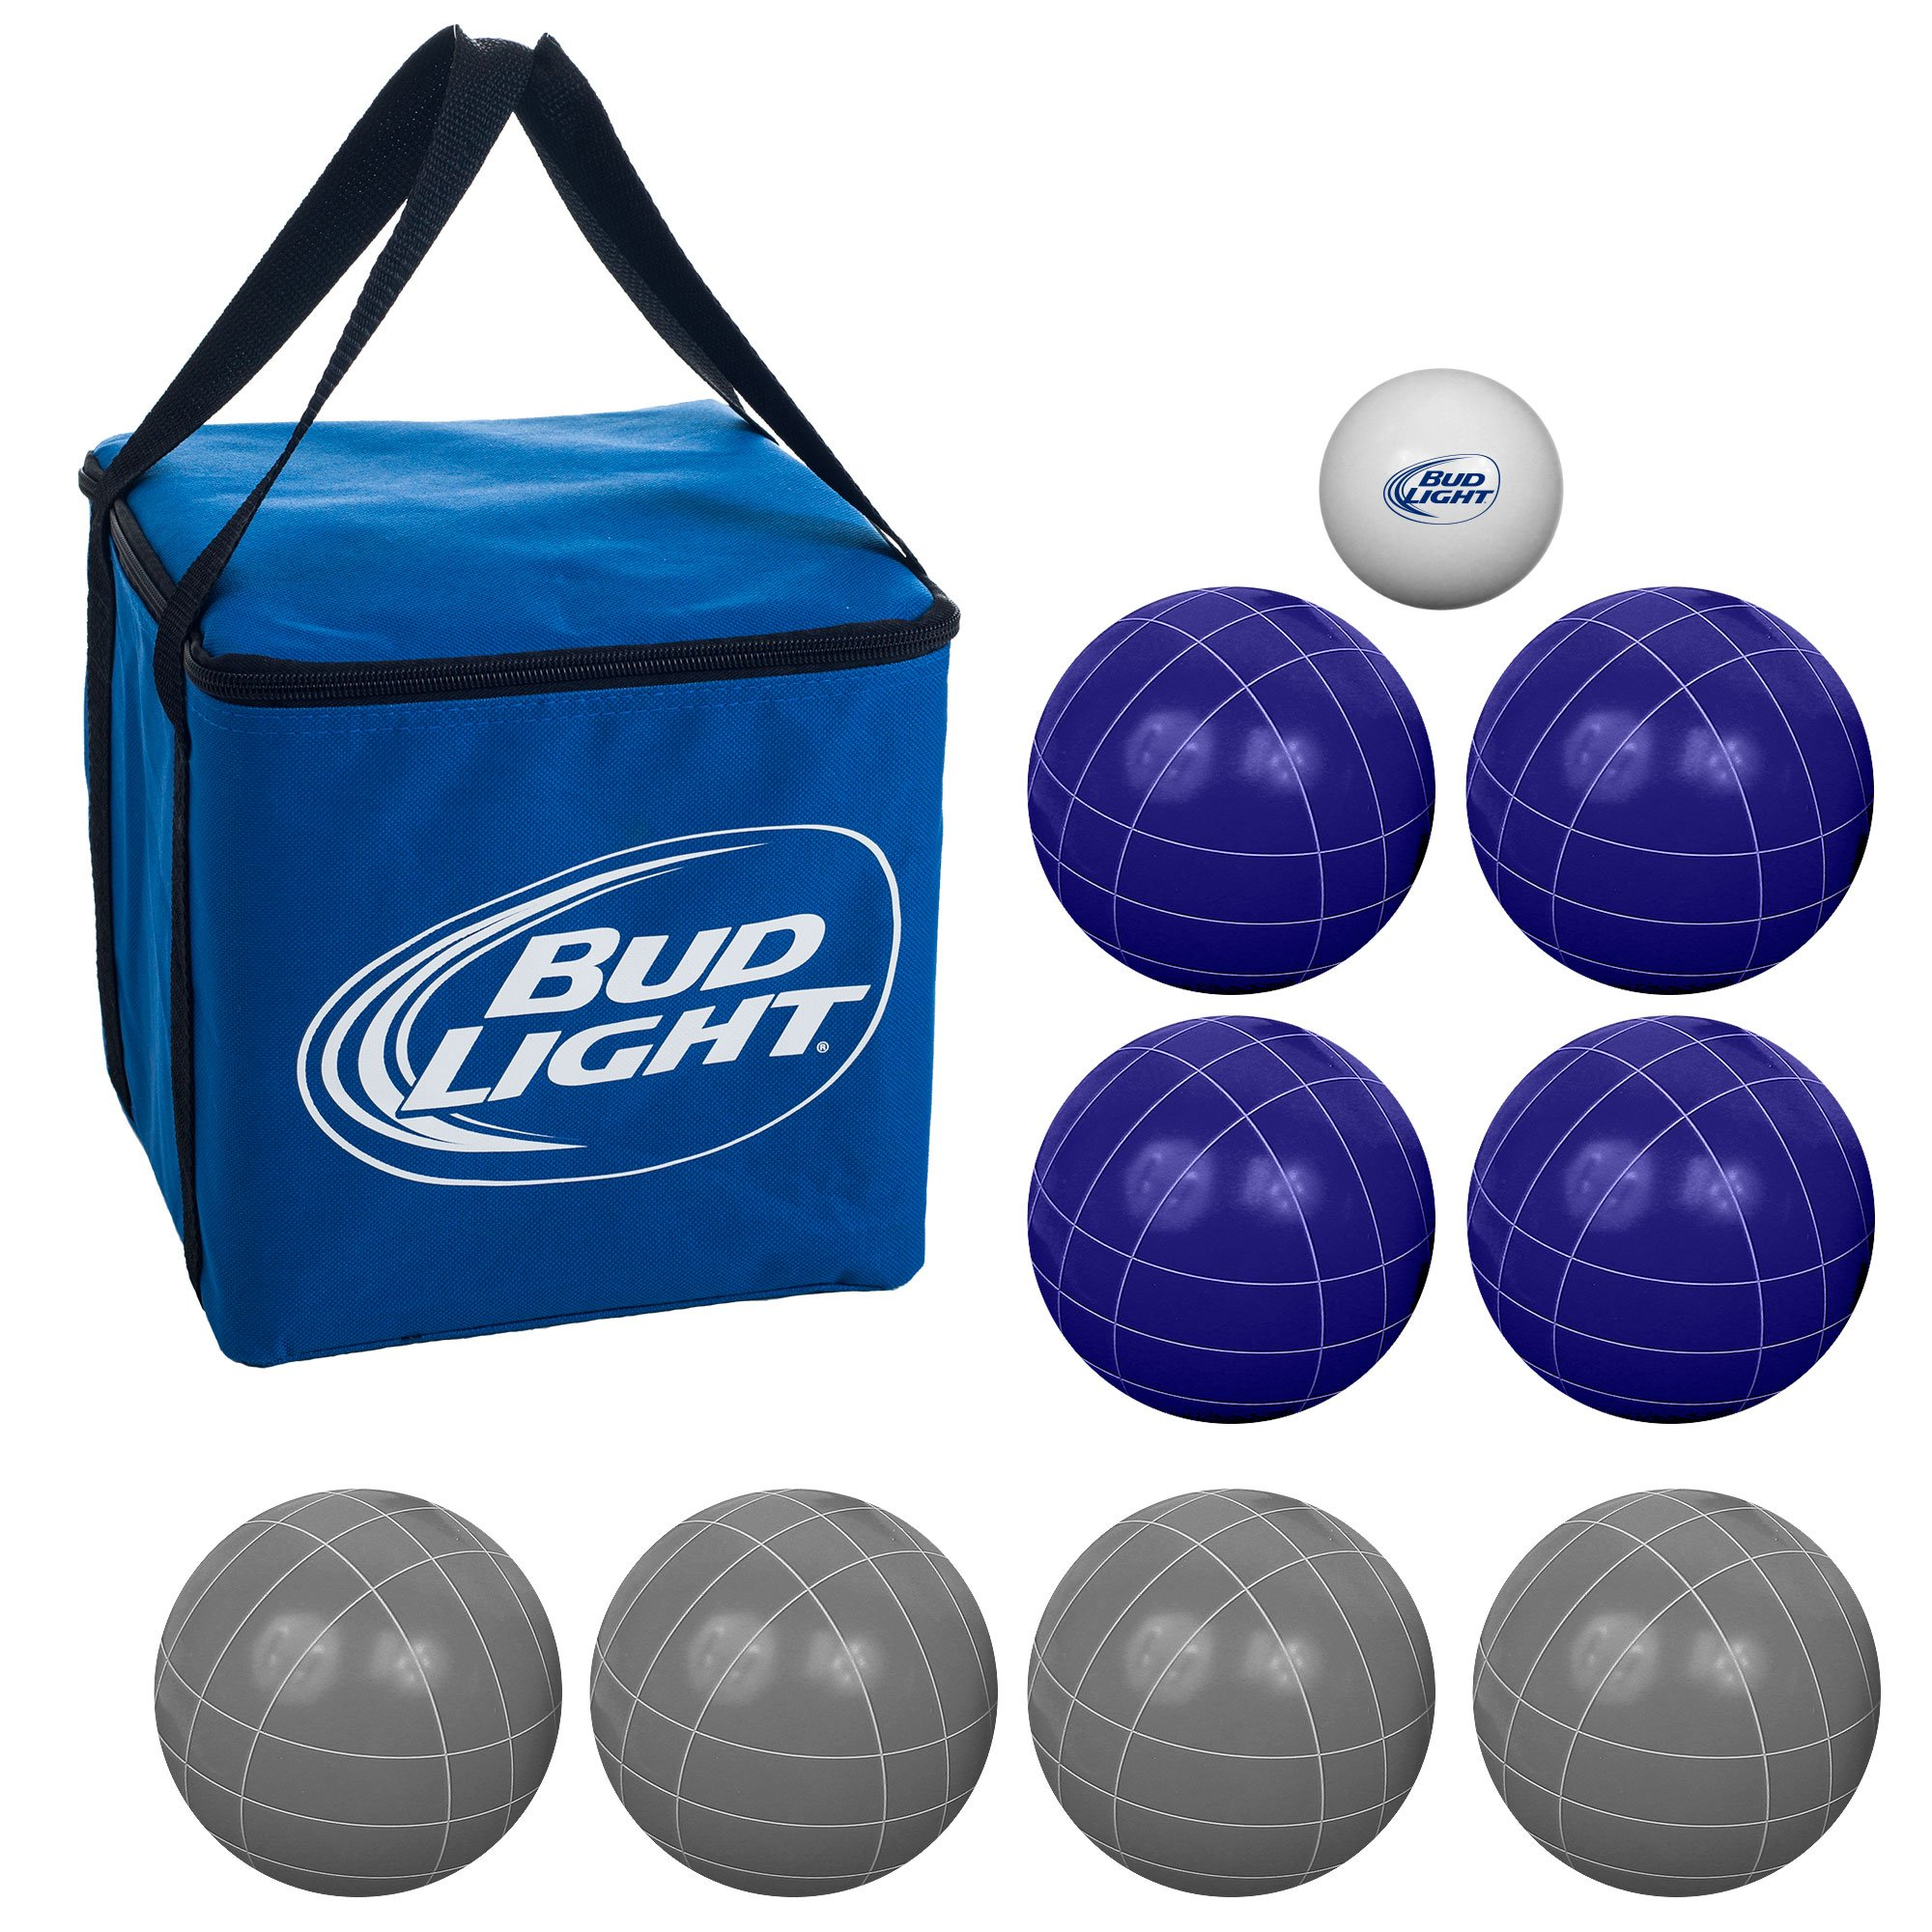 Premium Regulation Size Bud Light Bocce Ball Set - Includes Easy Carry Case!